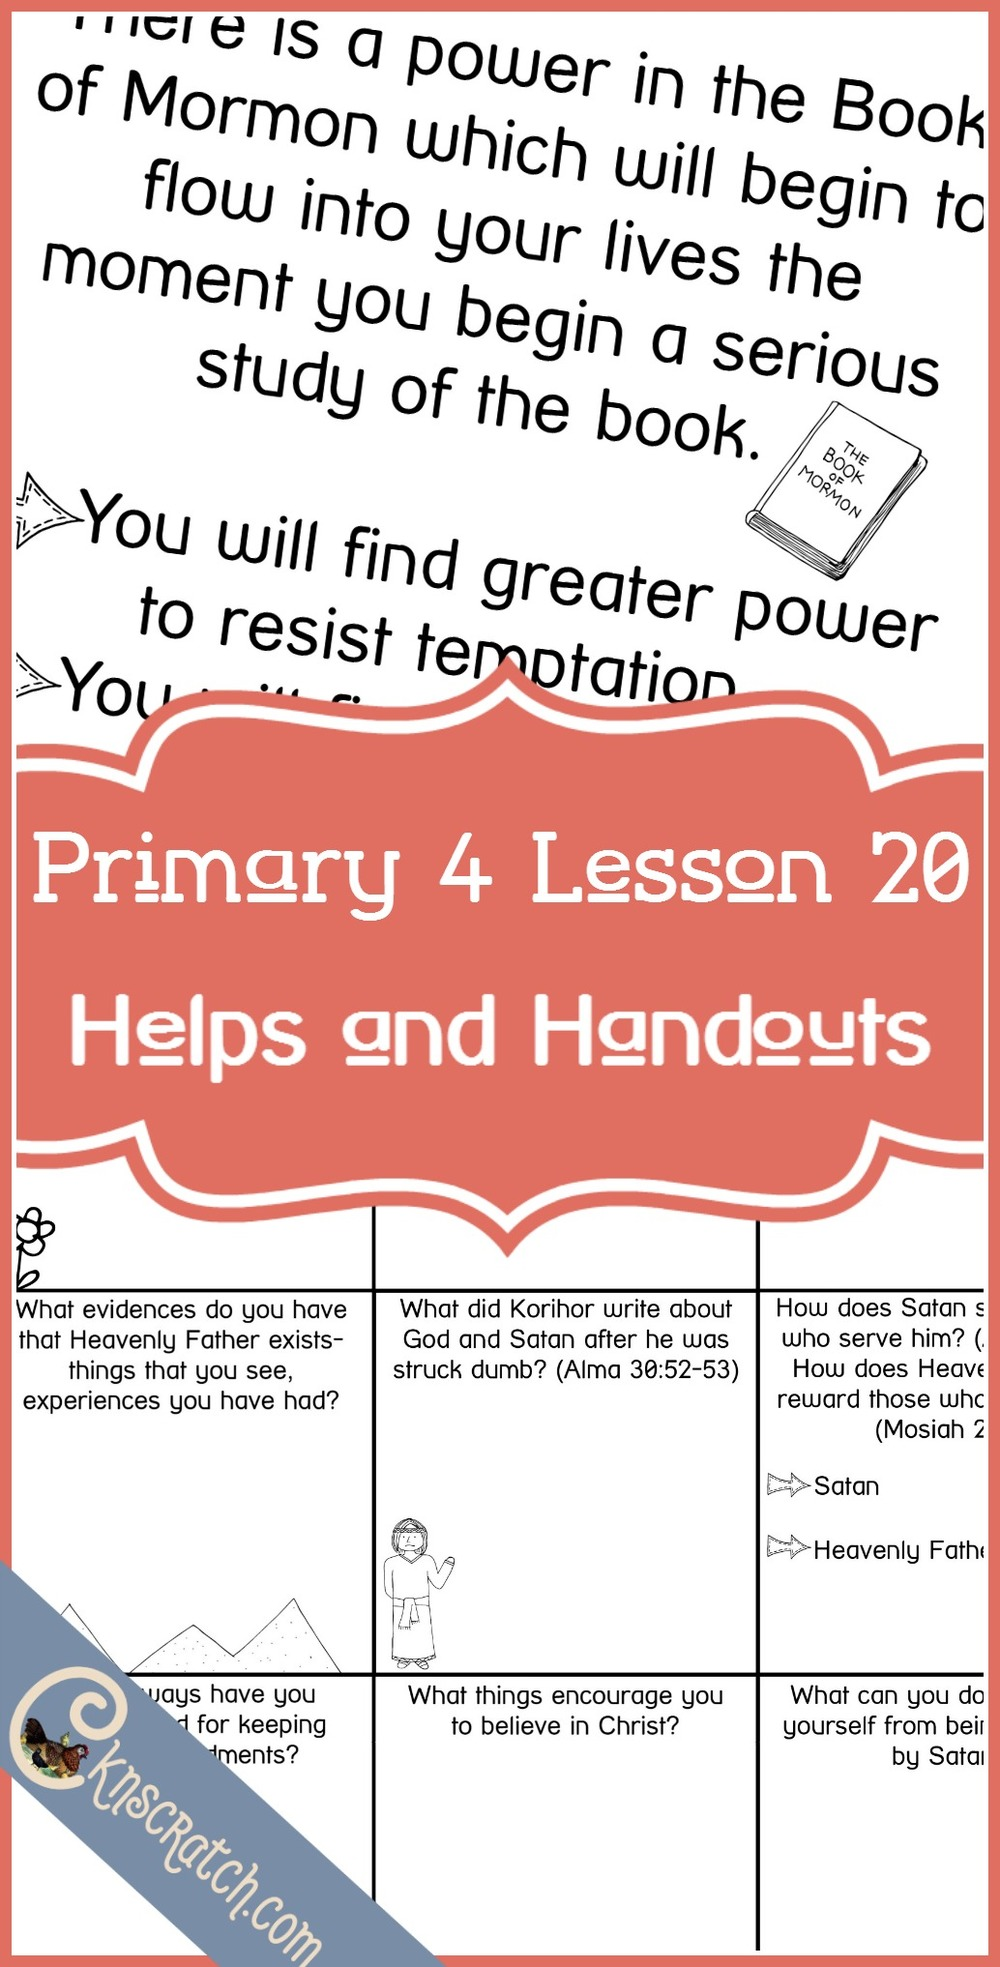 Love these lesson helps and handouts for Primary 4 Lesson 20: Korihor, the Anti-Christ